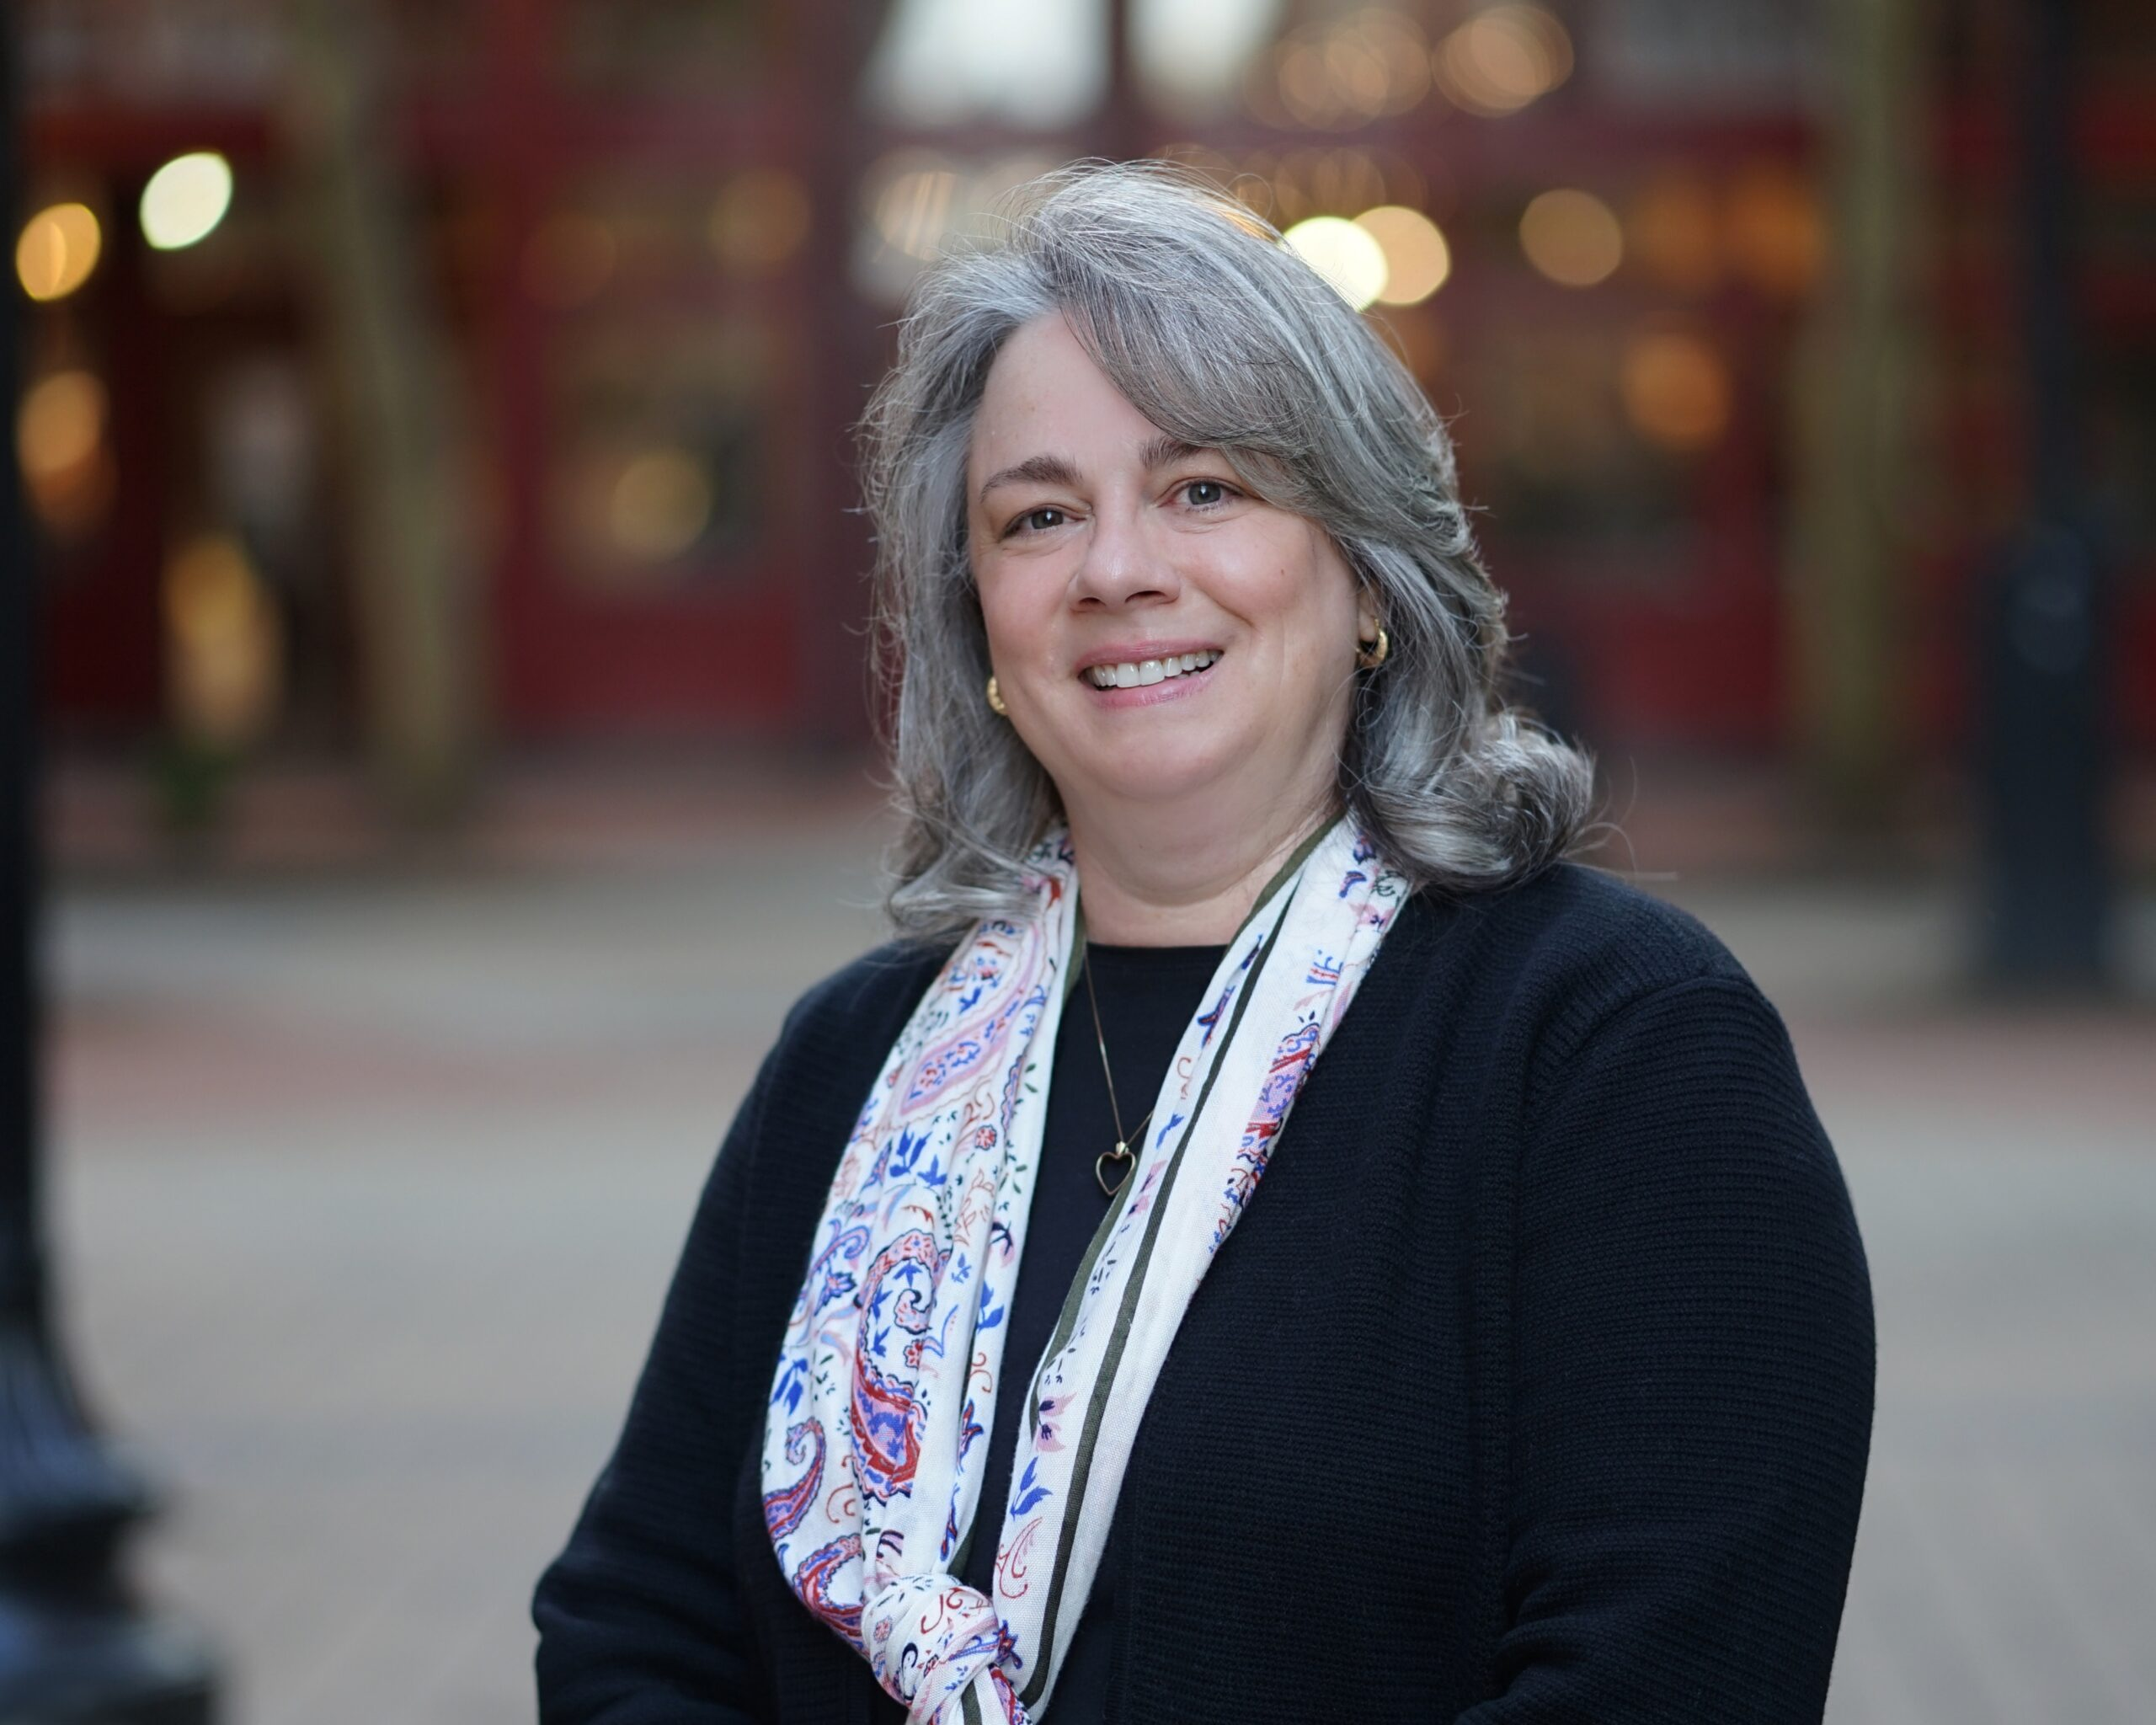 Headshot of Lynn Bayne, Stonerise Vice President of Clinical Operations